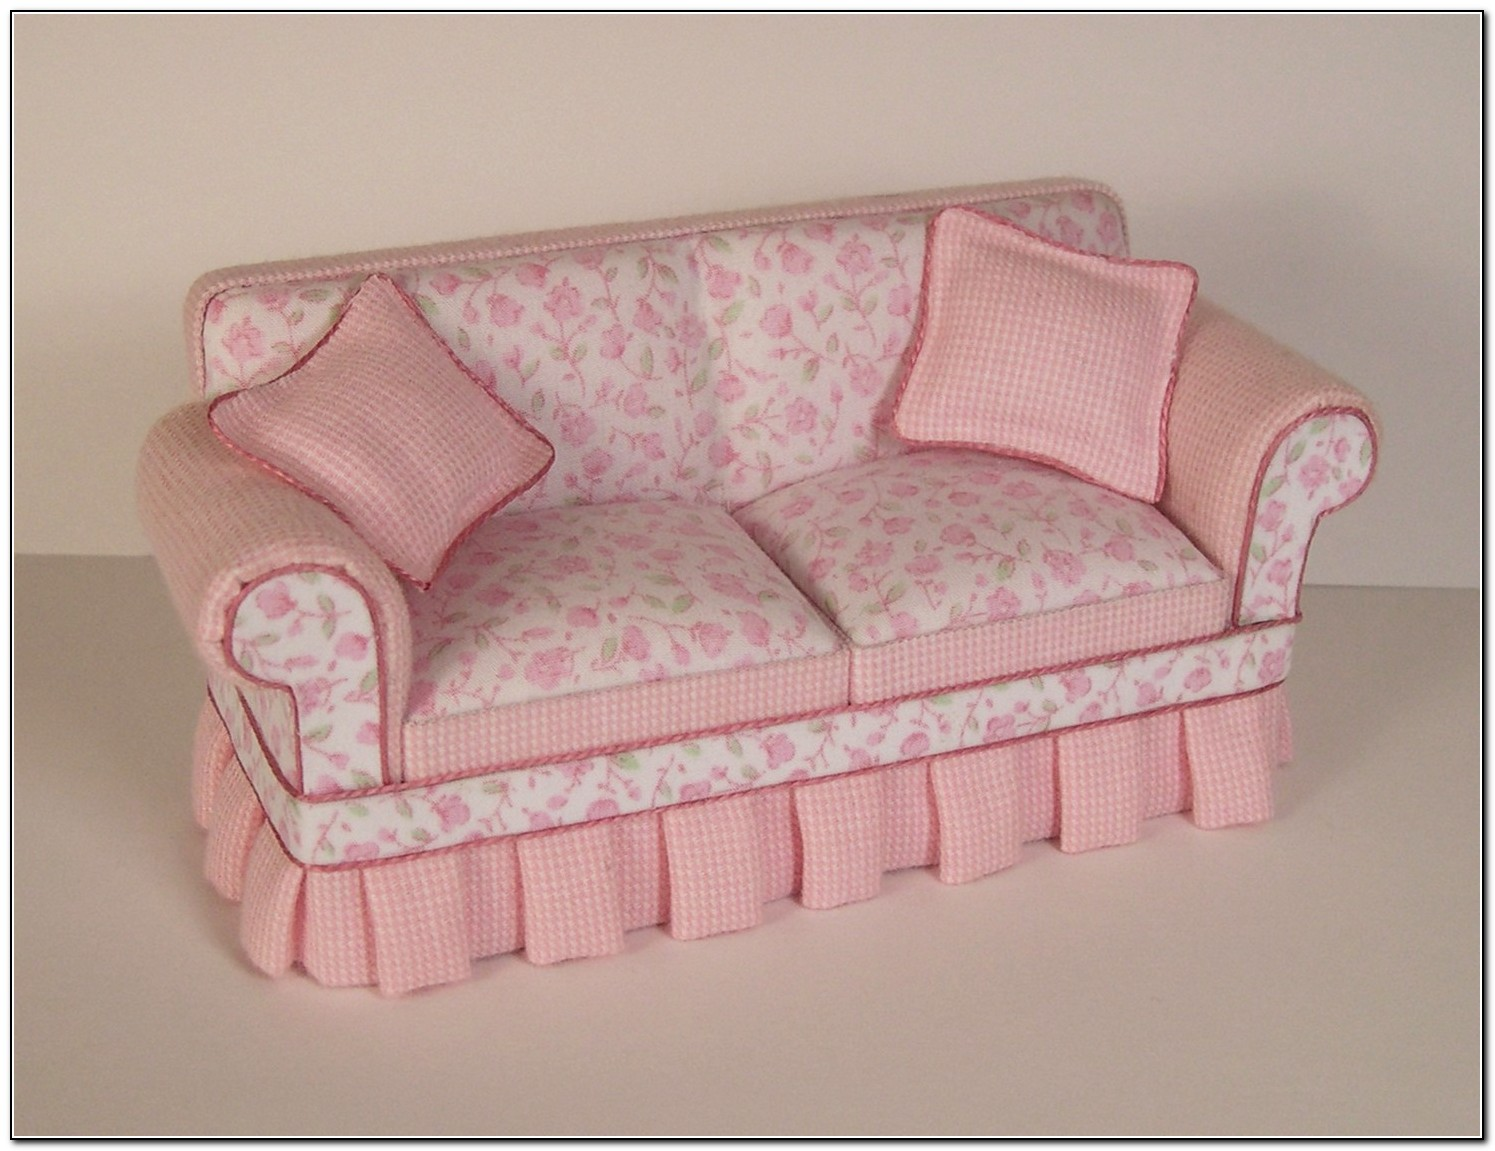 Shabby Chic Sofas And Chairs Sofa Home Design Ideas 1apx3kyqxd15478